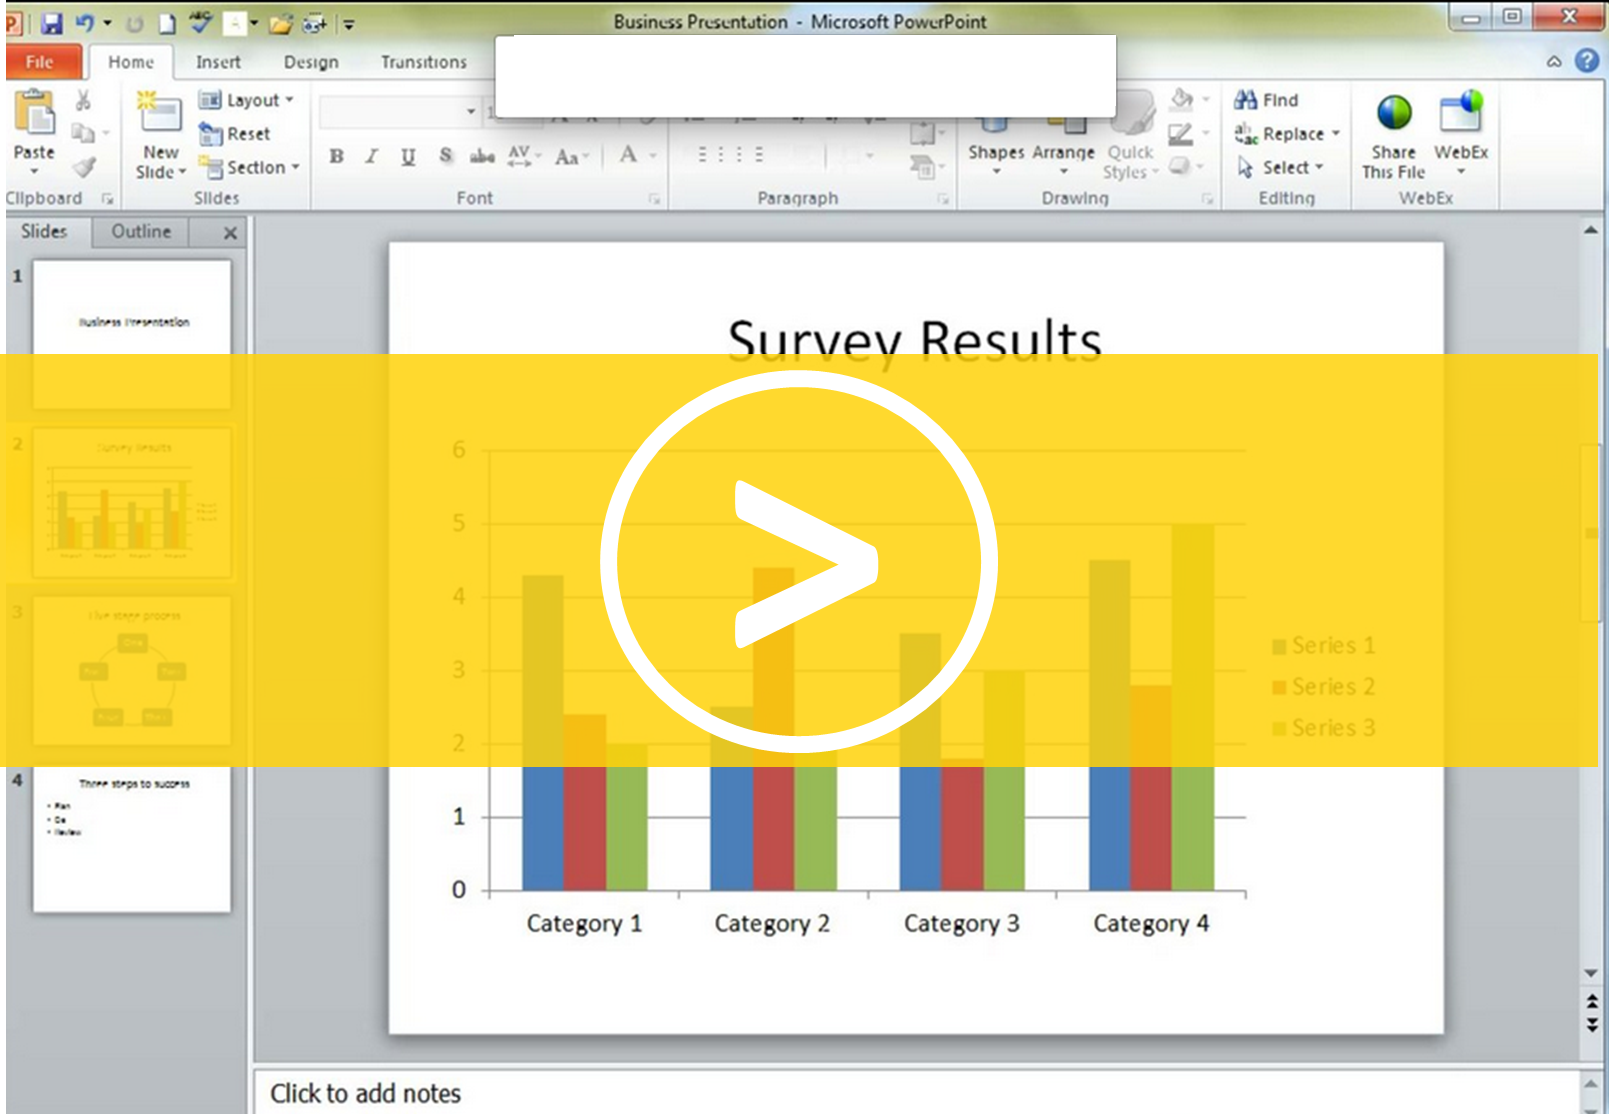 Animating charts in a PowerPoint presentation